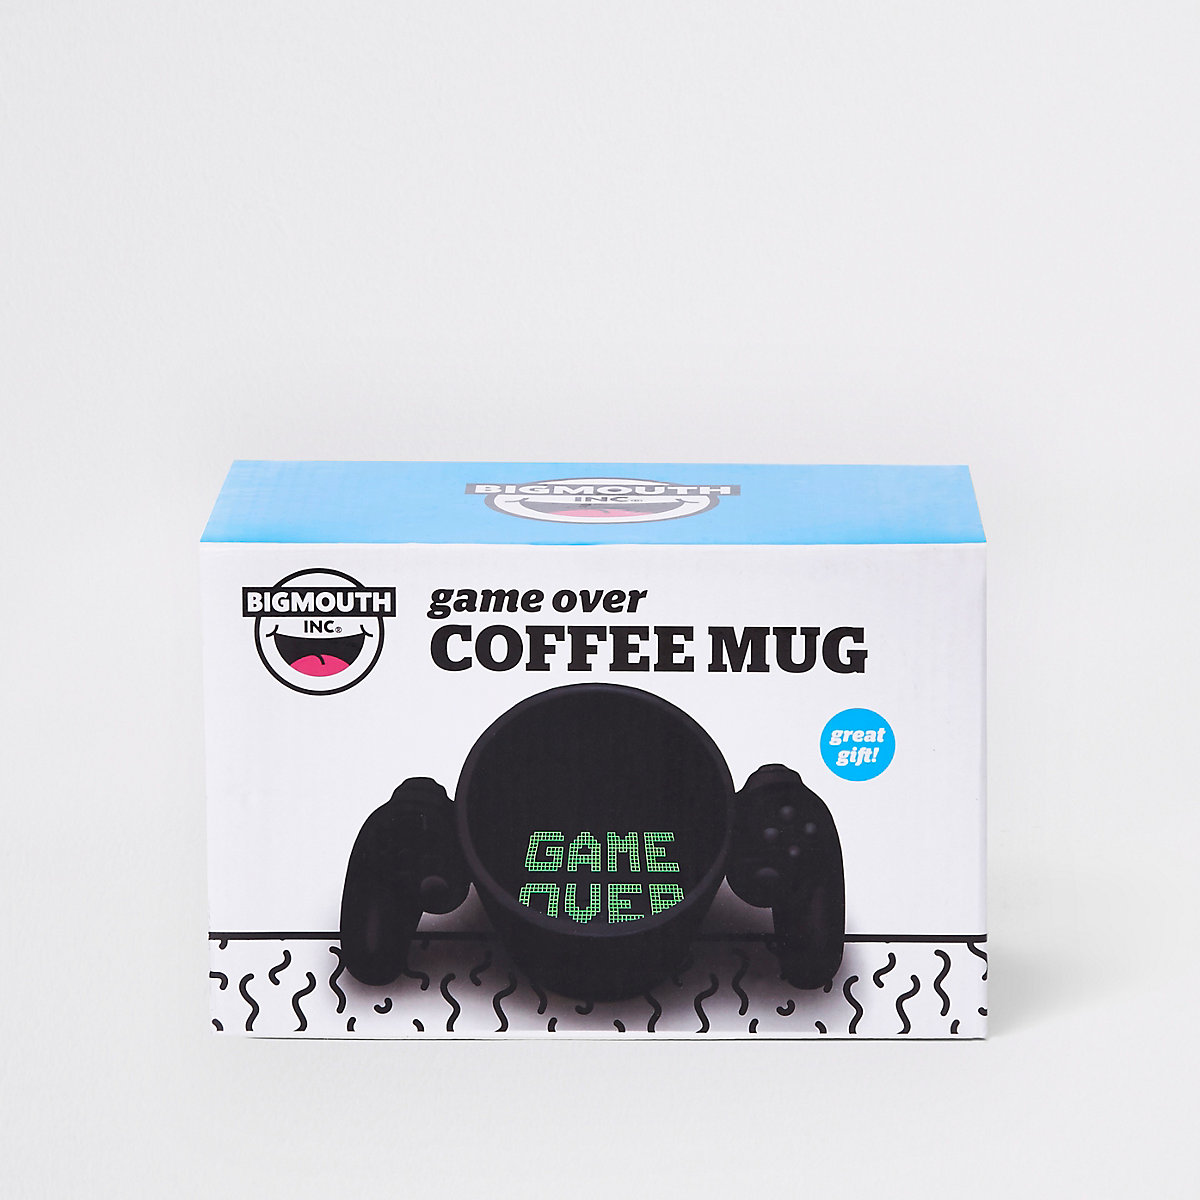 Black 'game over' coffee mug